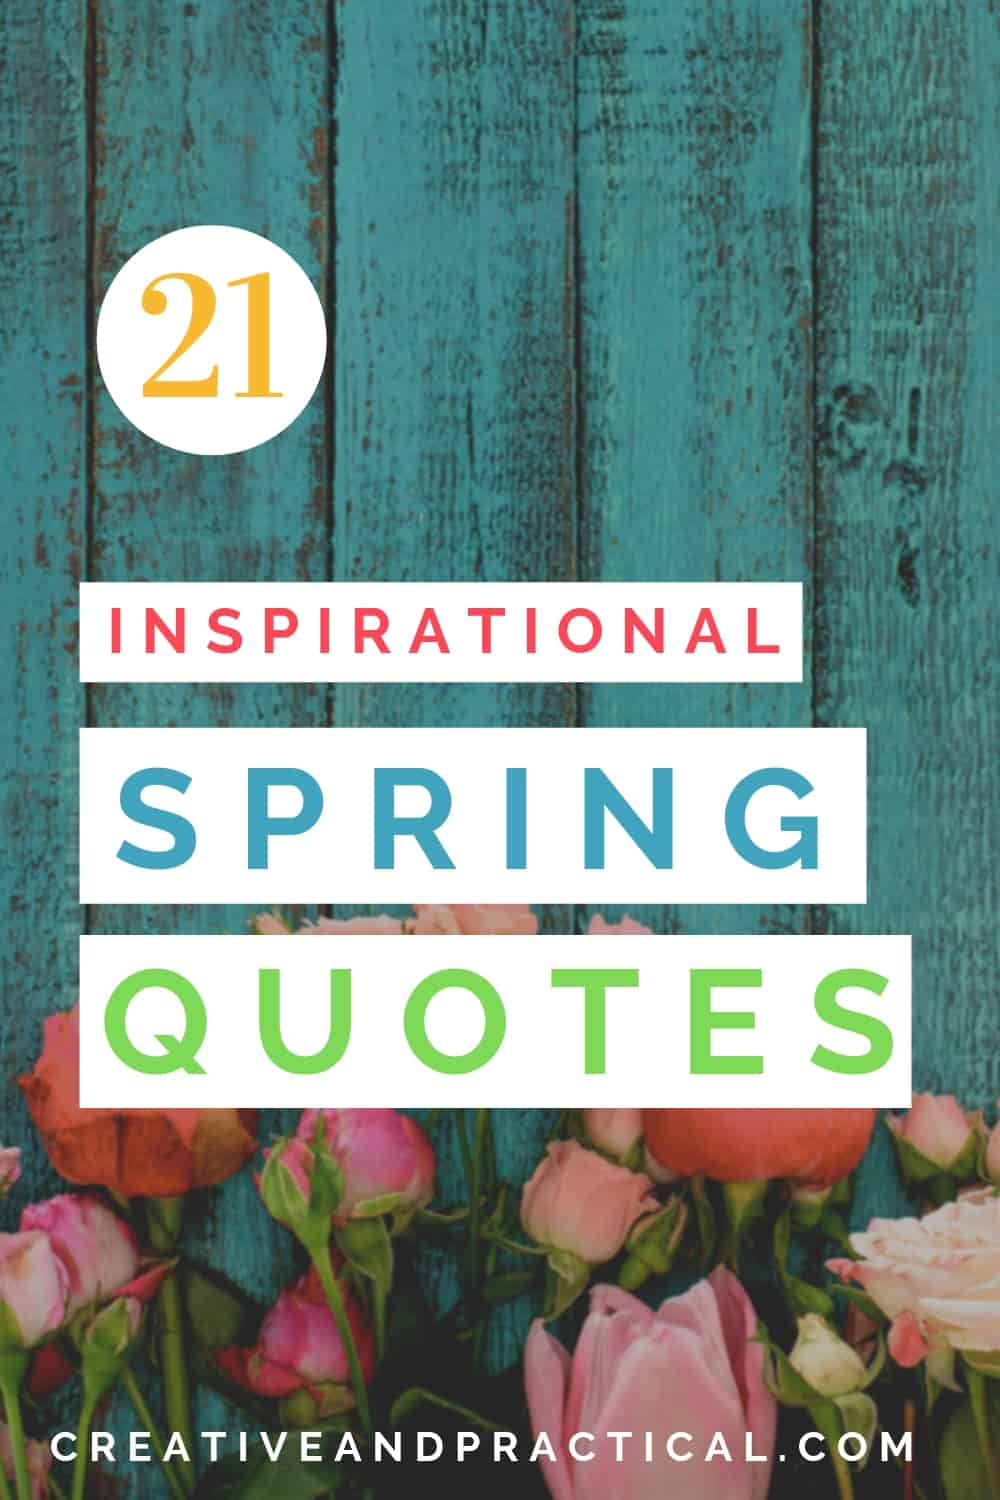 The nest Spring Quotes